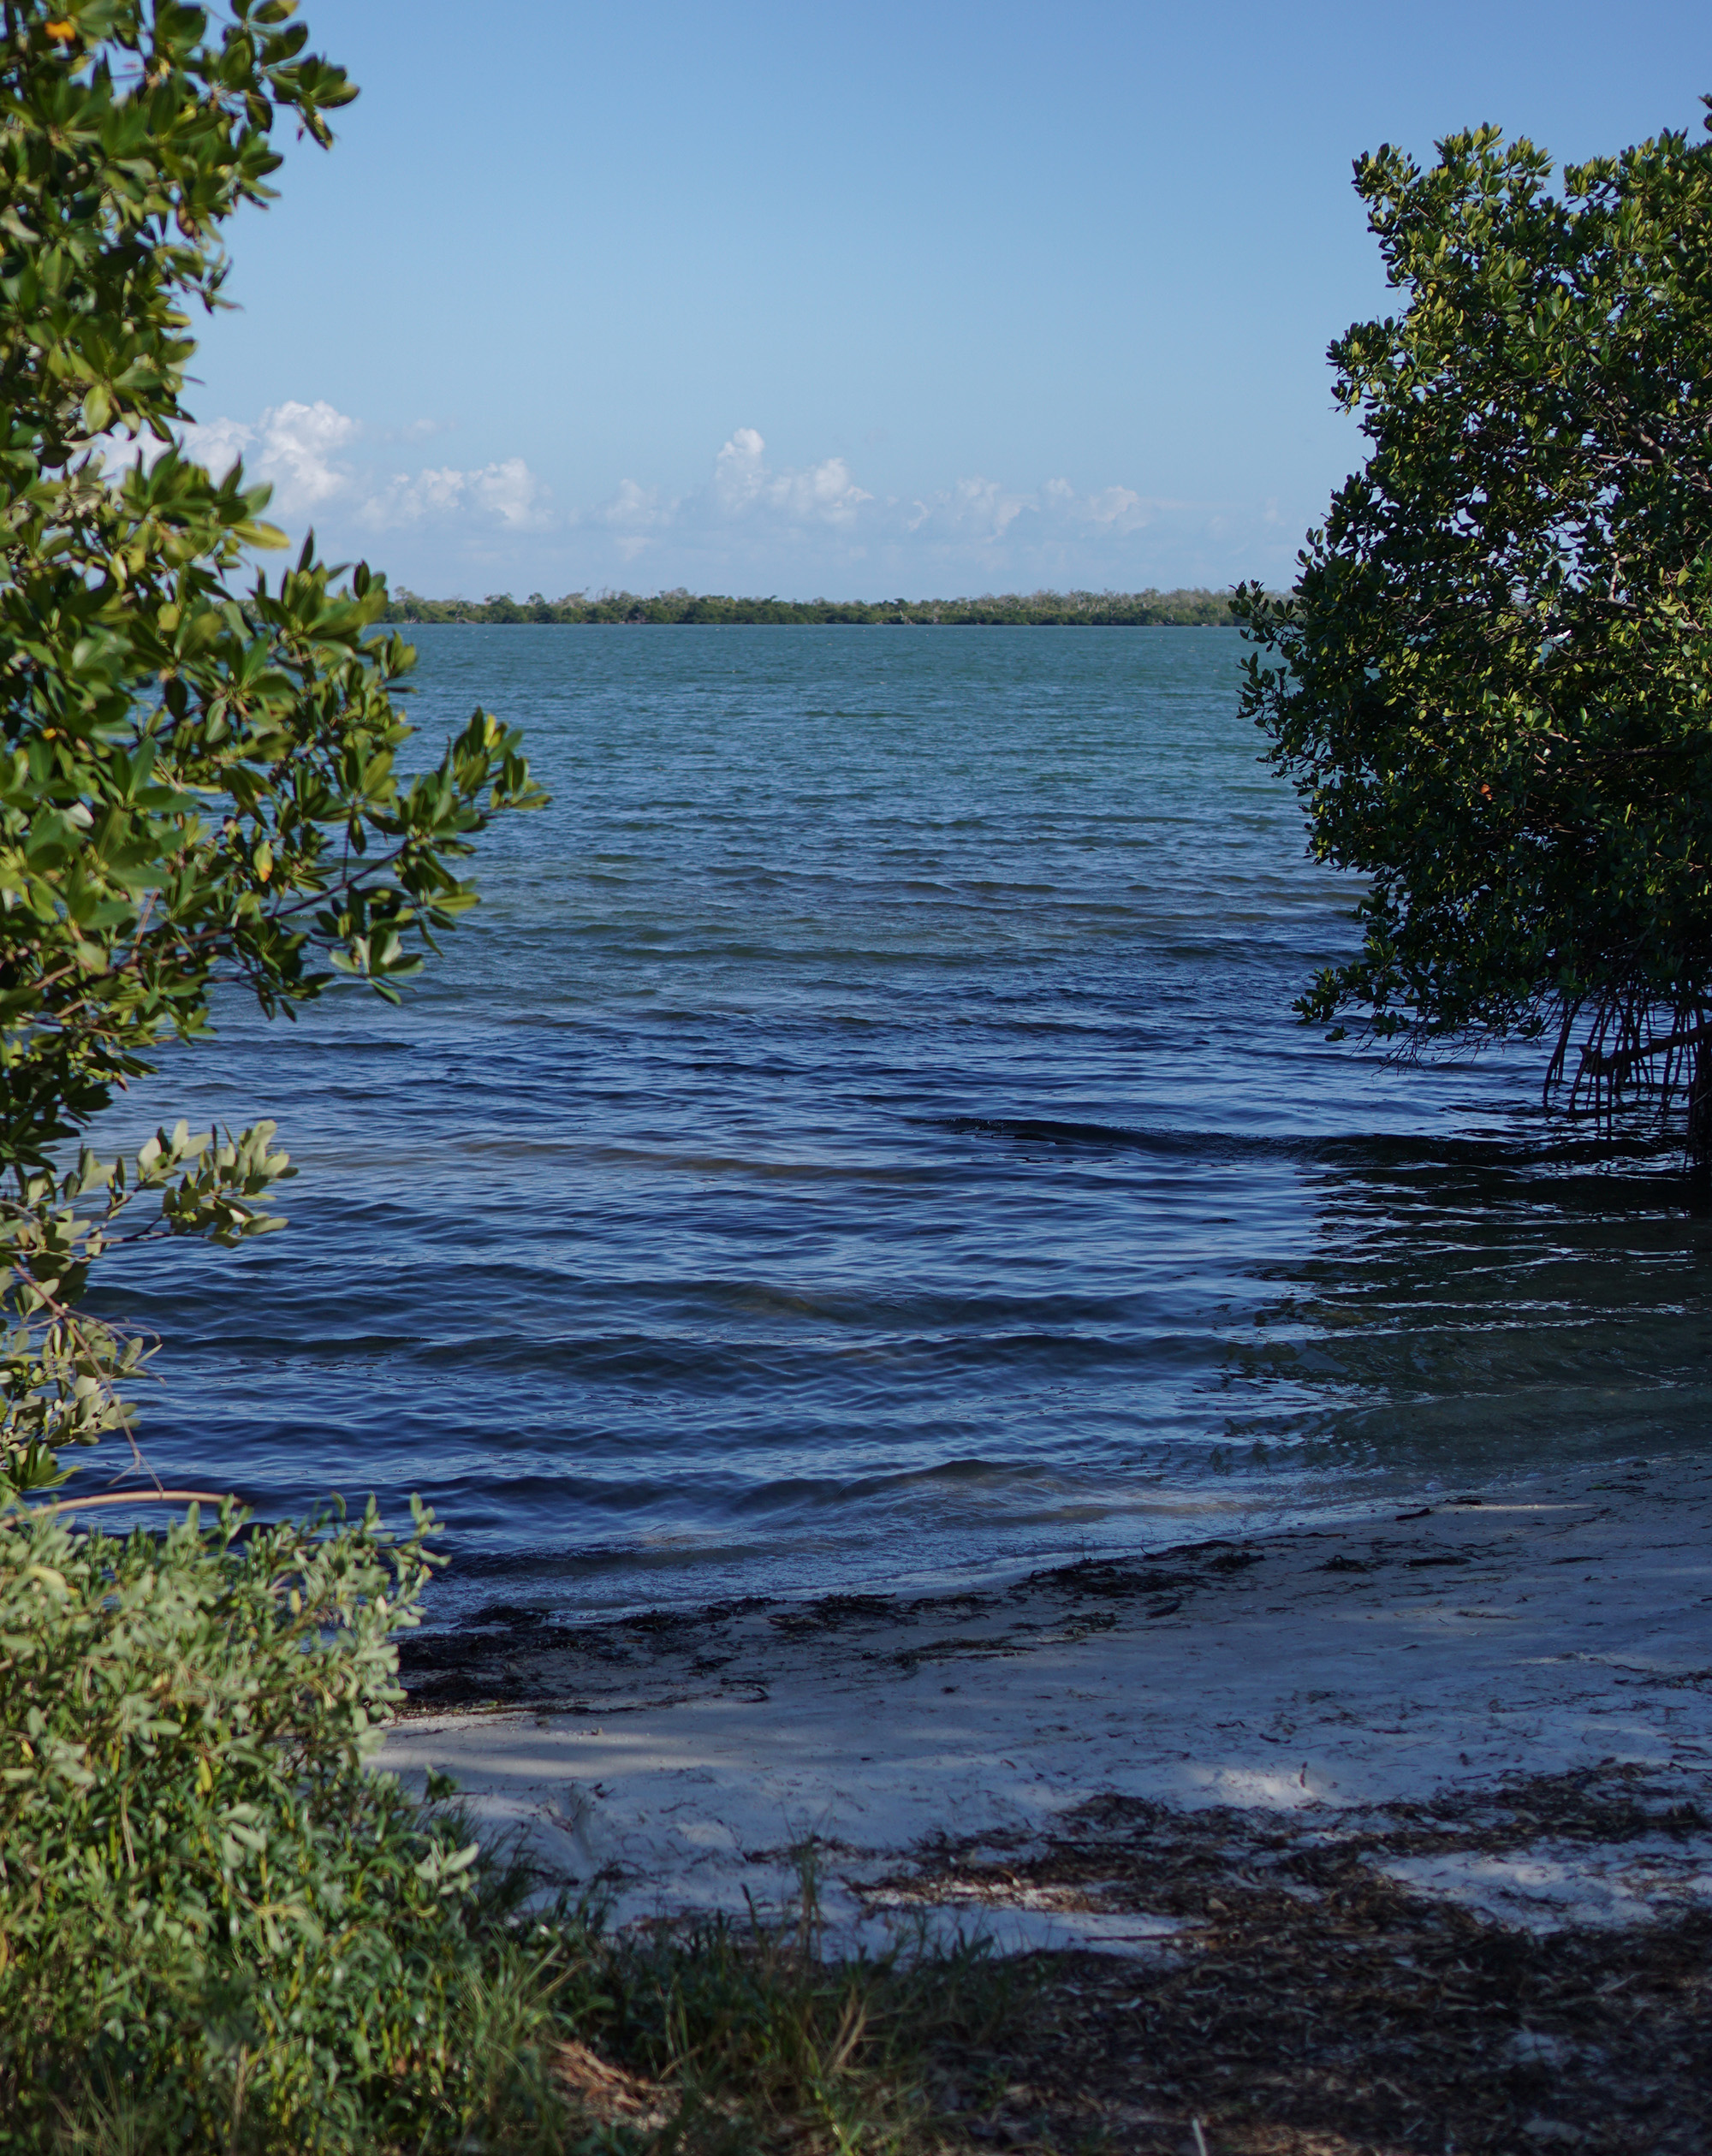 The view toward Pelican Bay from Cayo Costa, Florida / Darker than Green